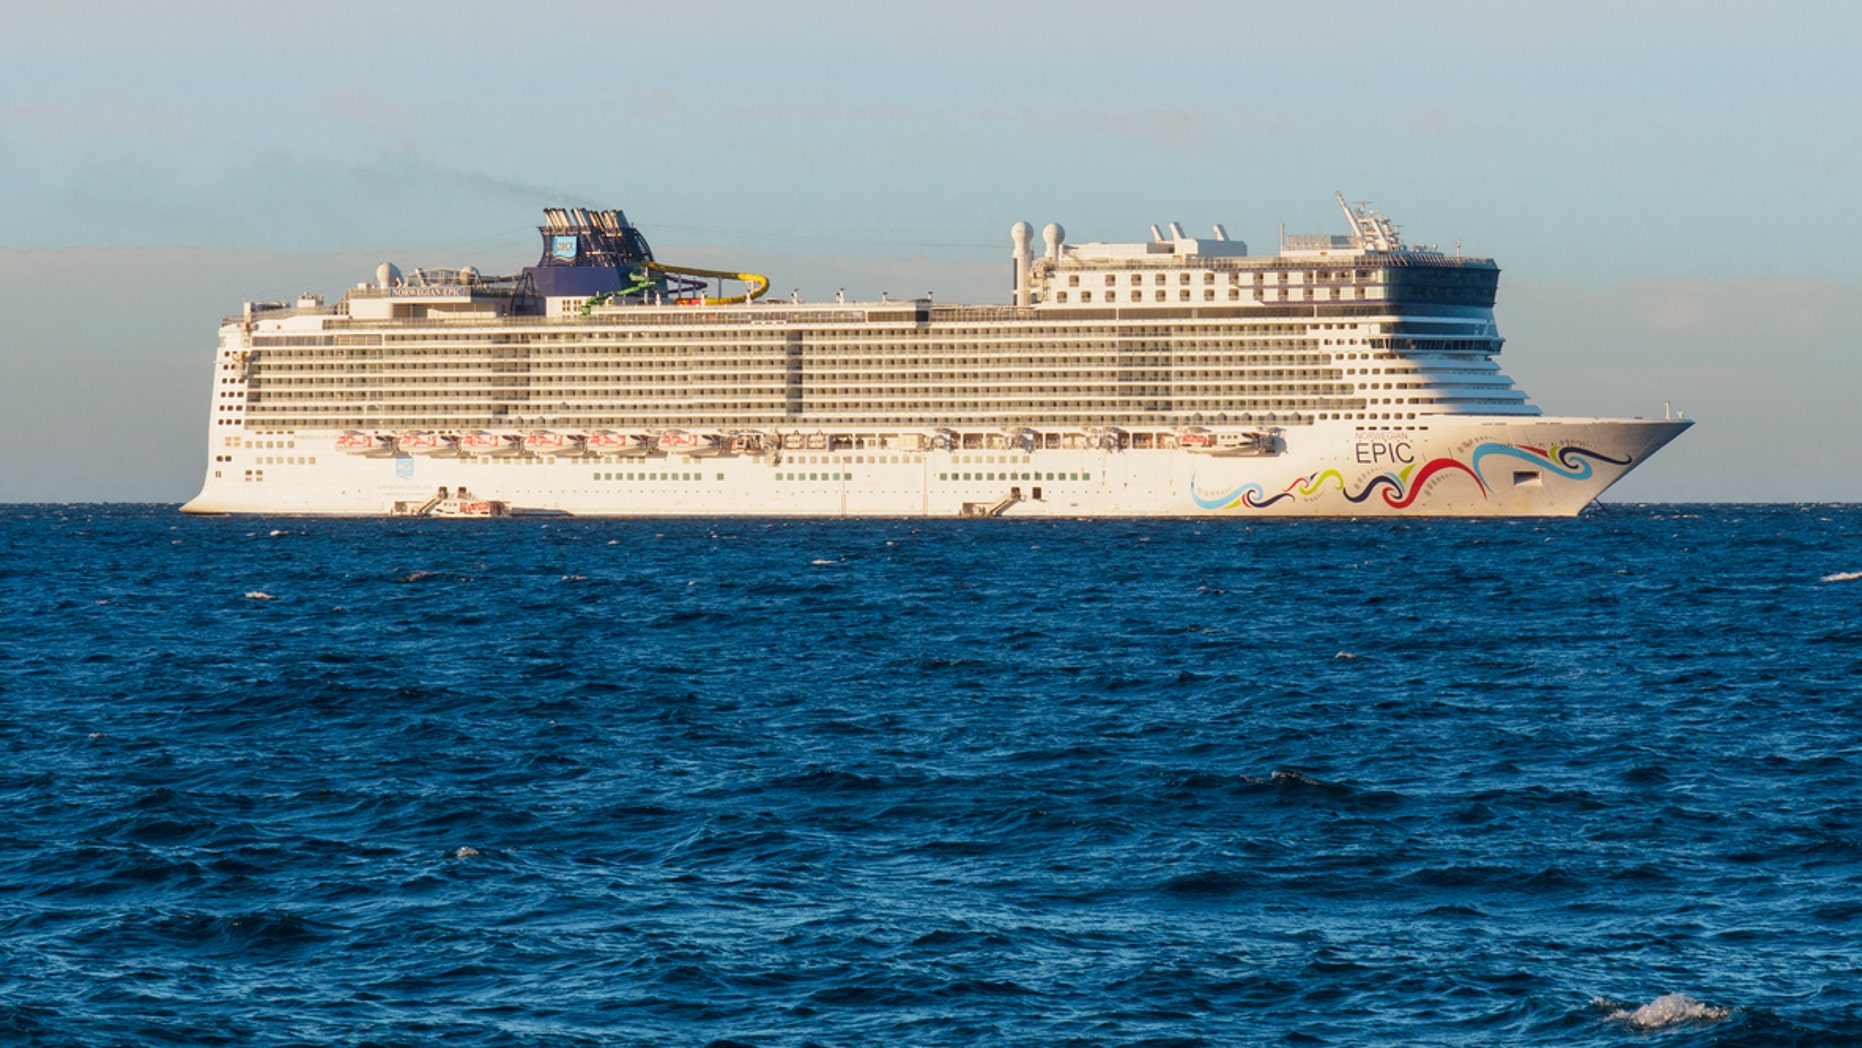 Several passengers aboard the Norwegian Epic were caught with drugs.